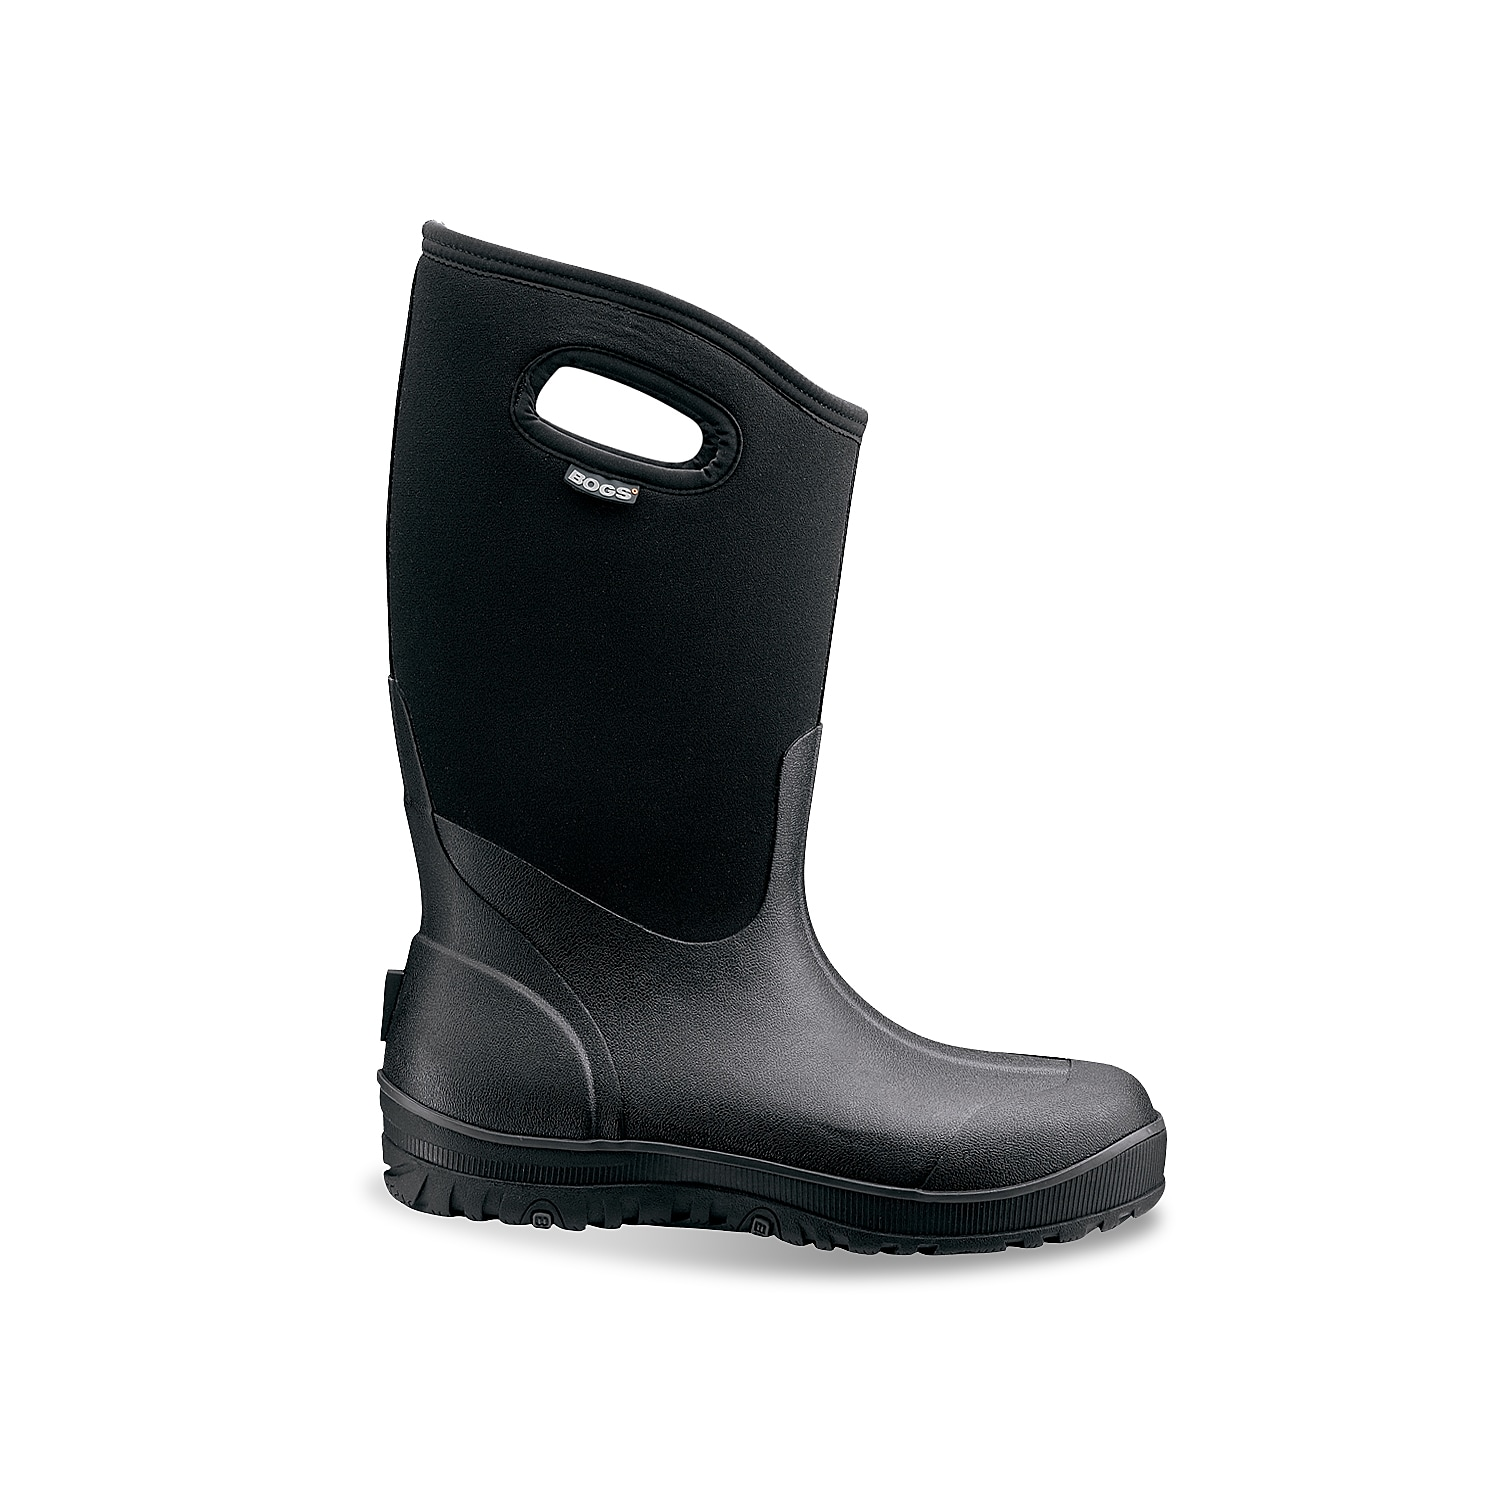 Weather won\\\'t stop you when you wear the Ultra High winter boots from Bogs. These comfort-rated snow boots are designed to provide excellent traction on any surface, while a rubber sponge internal midsole provides extra cushioning and warmth.